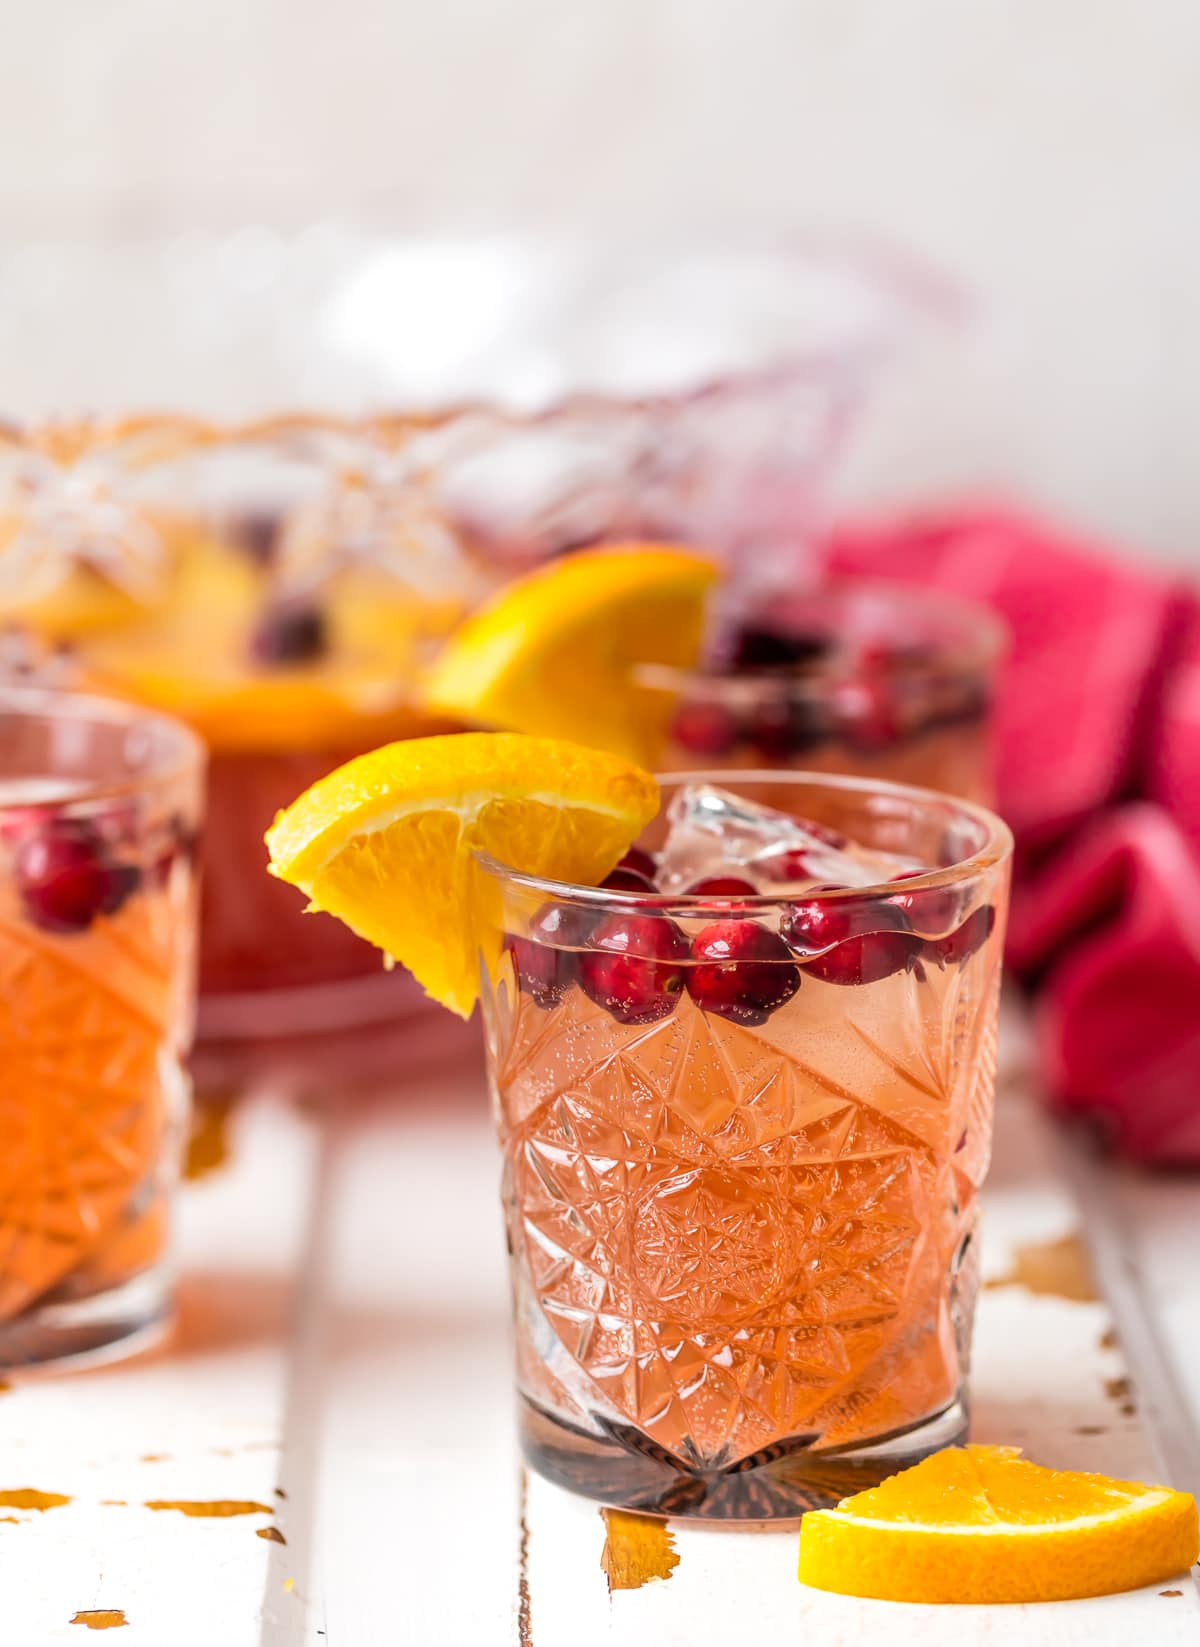 Christmas punch recipe in glasses